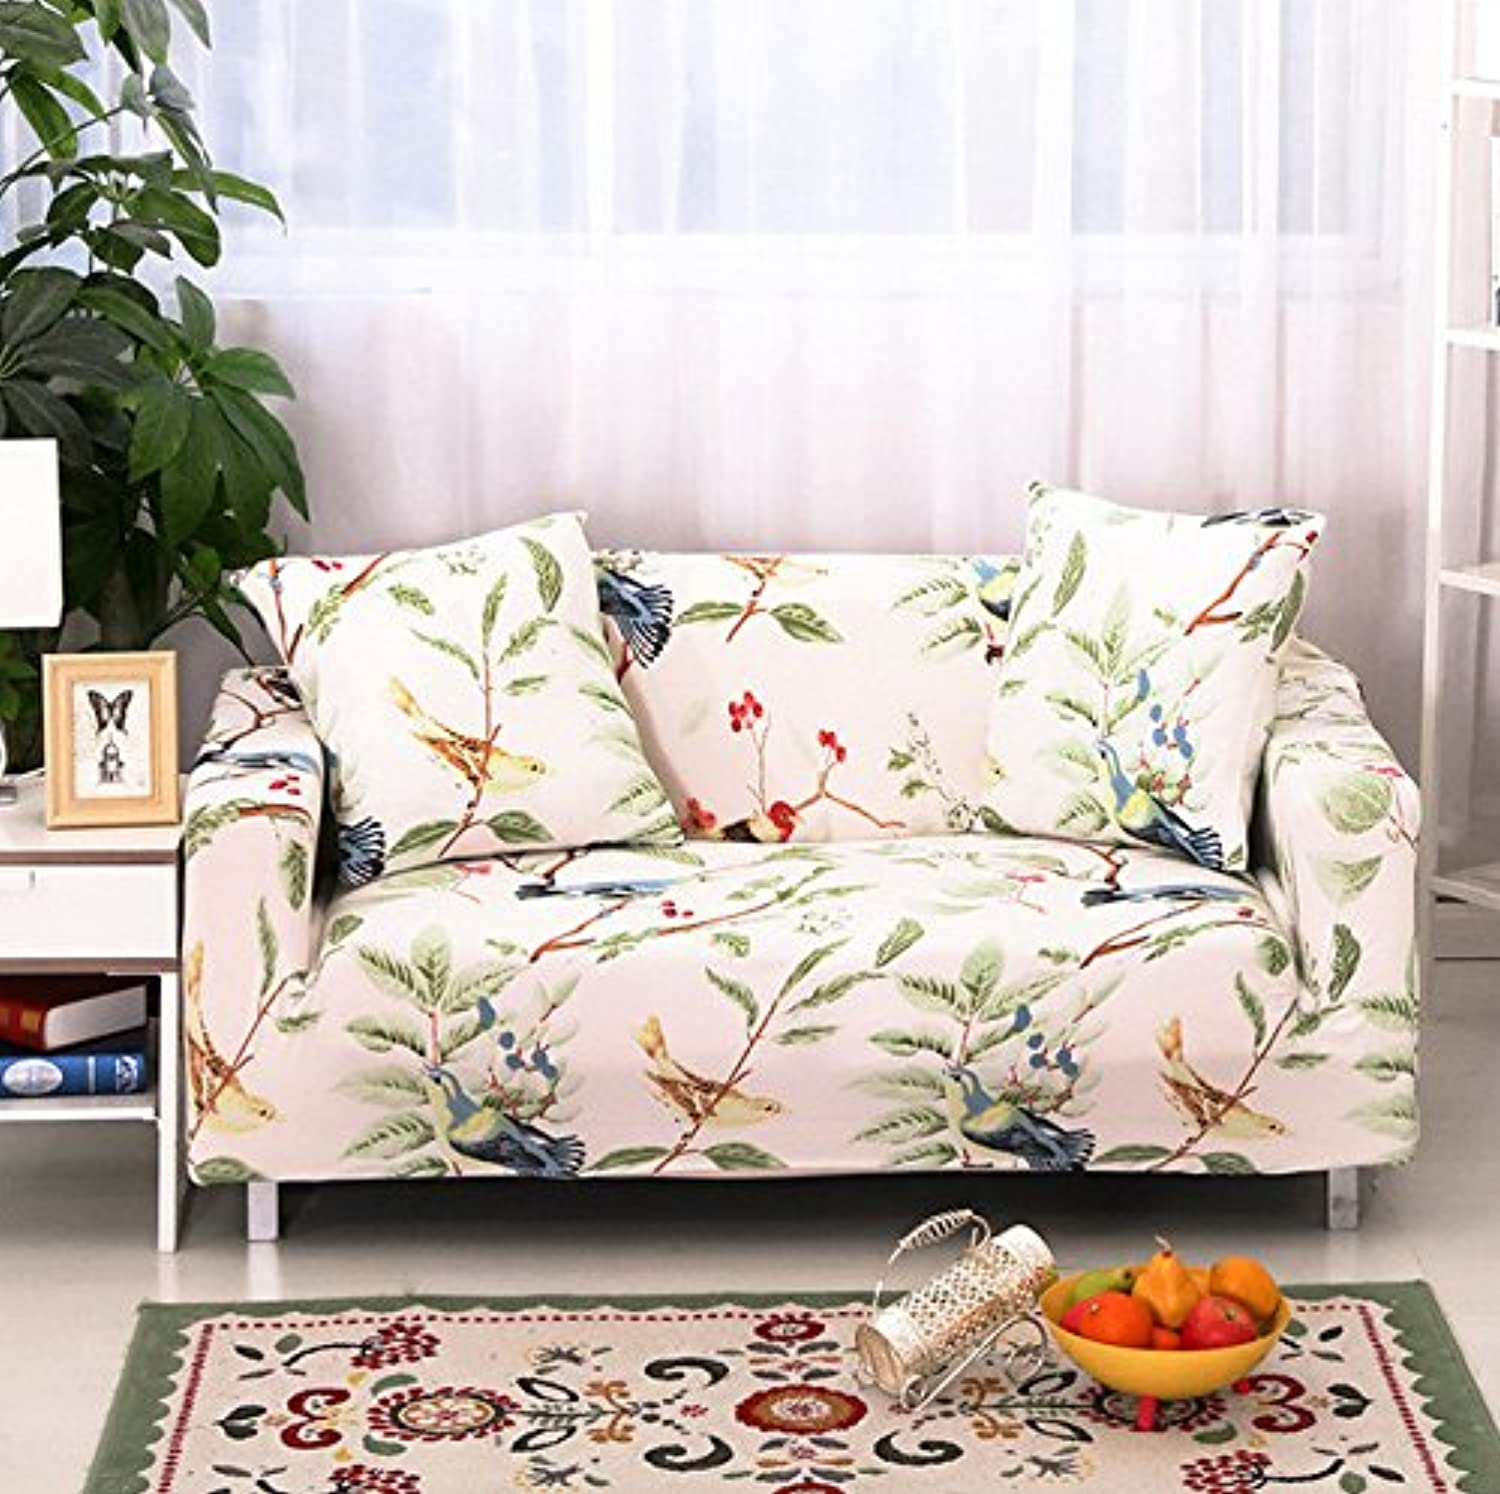 Sofa Slipcovers Tight wrap All-Inclusive Slip-Resistant sectional Elastic Full Sofa Cover S M L XL Size   20161220, XL 235-300cm